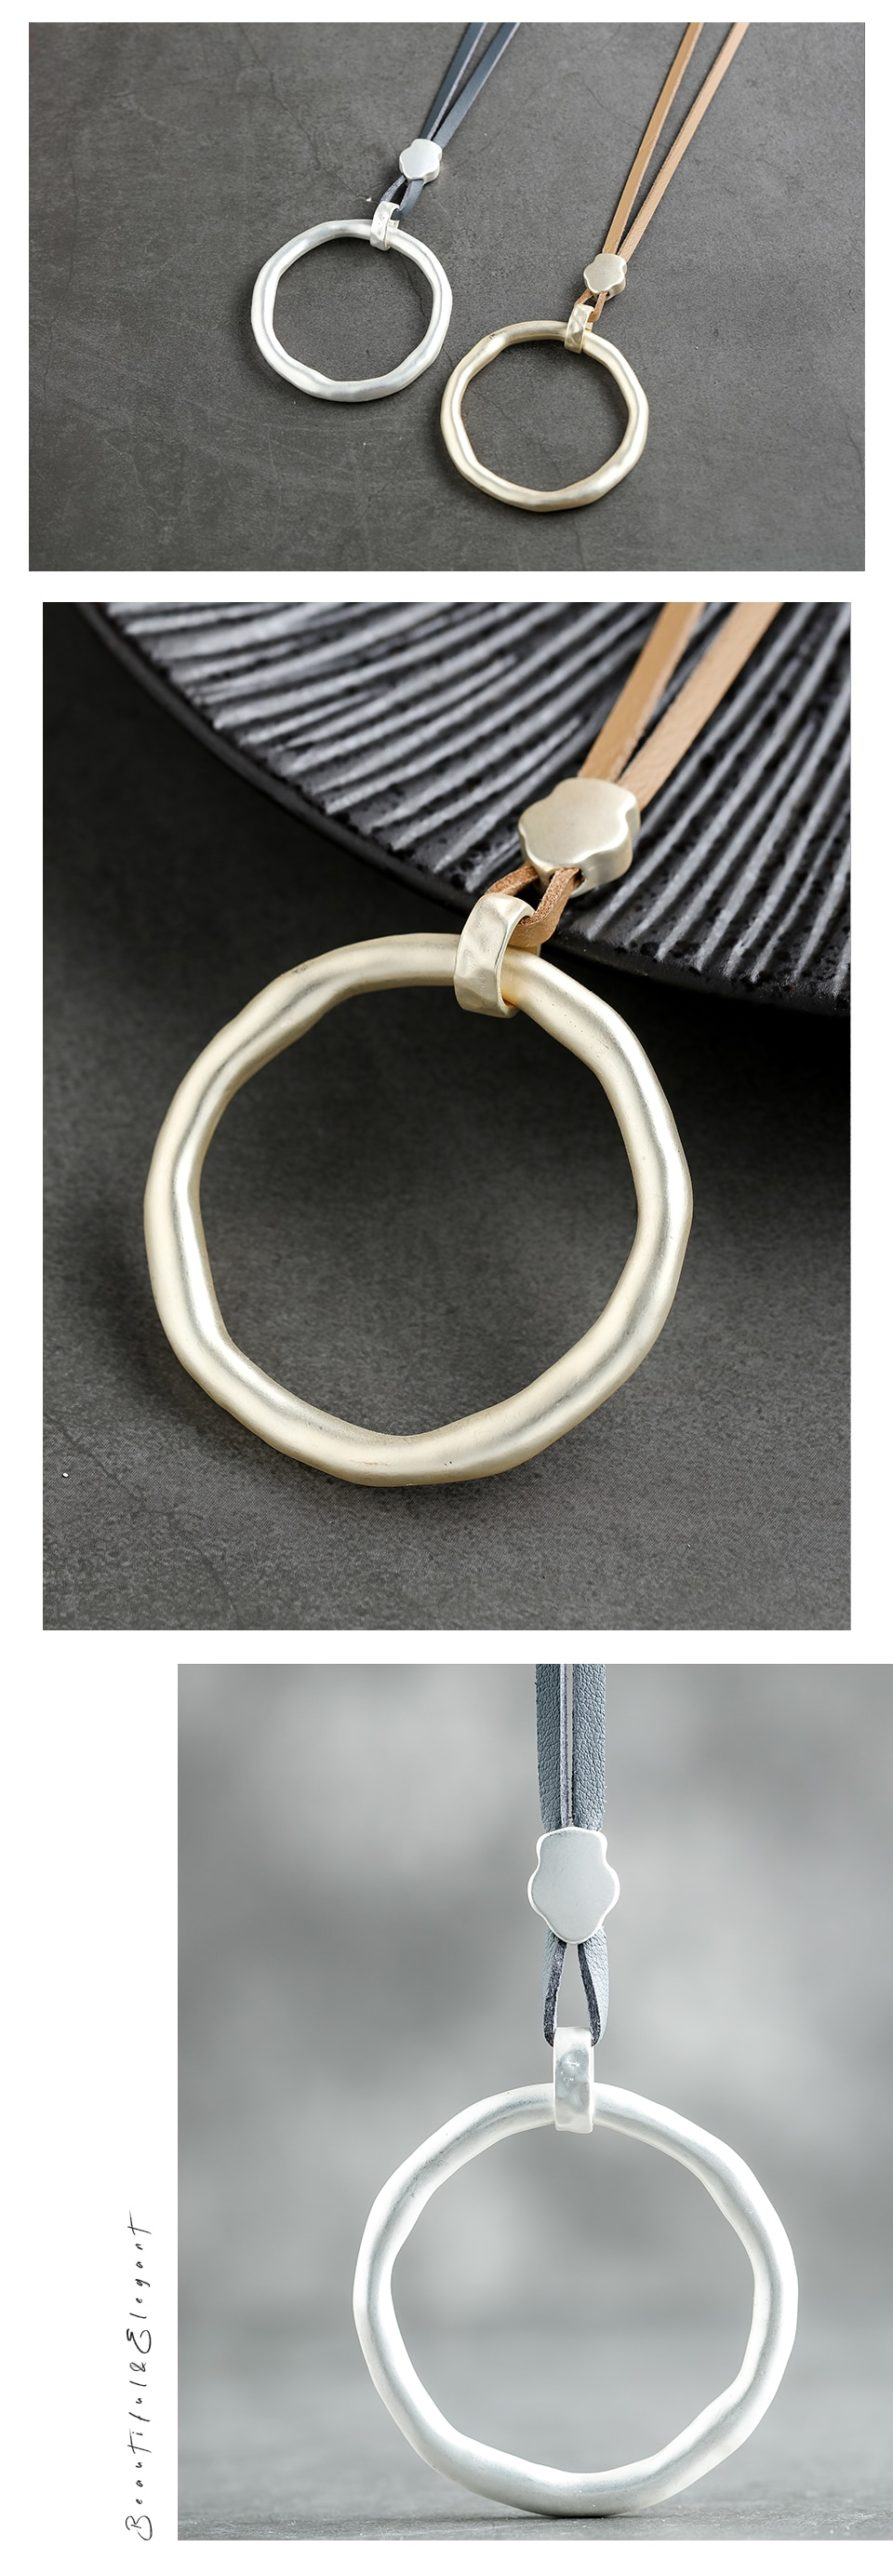 Leather Long Necklace Trendy Jewelry Women Chokers  necklaces & pendants Handmade Necklaces & Pendant Gifts suspension 2020 New